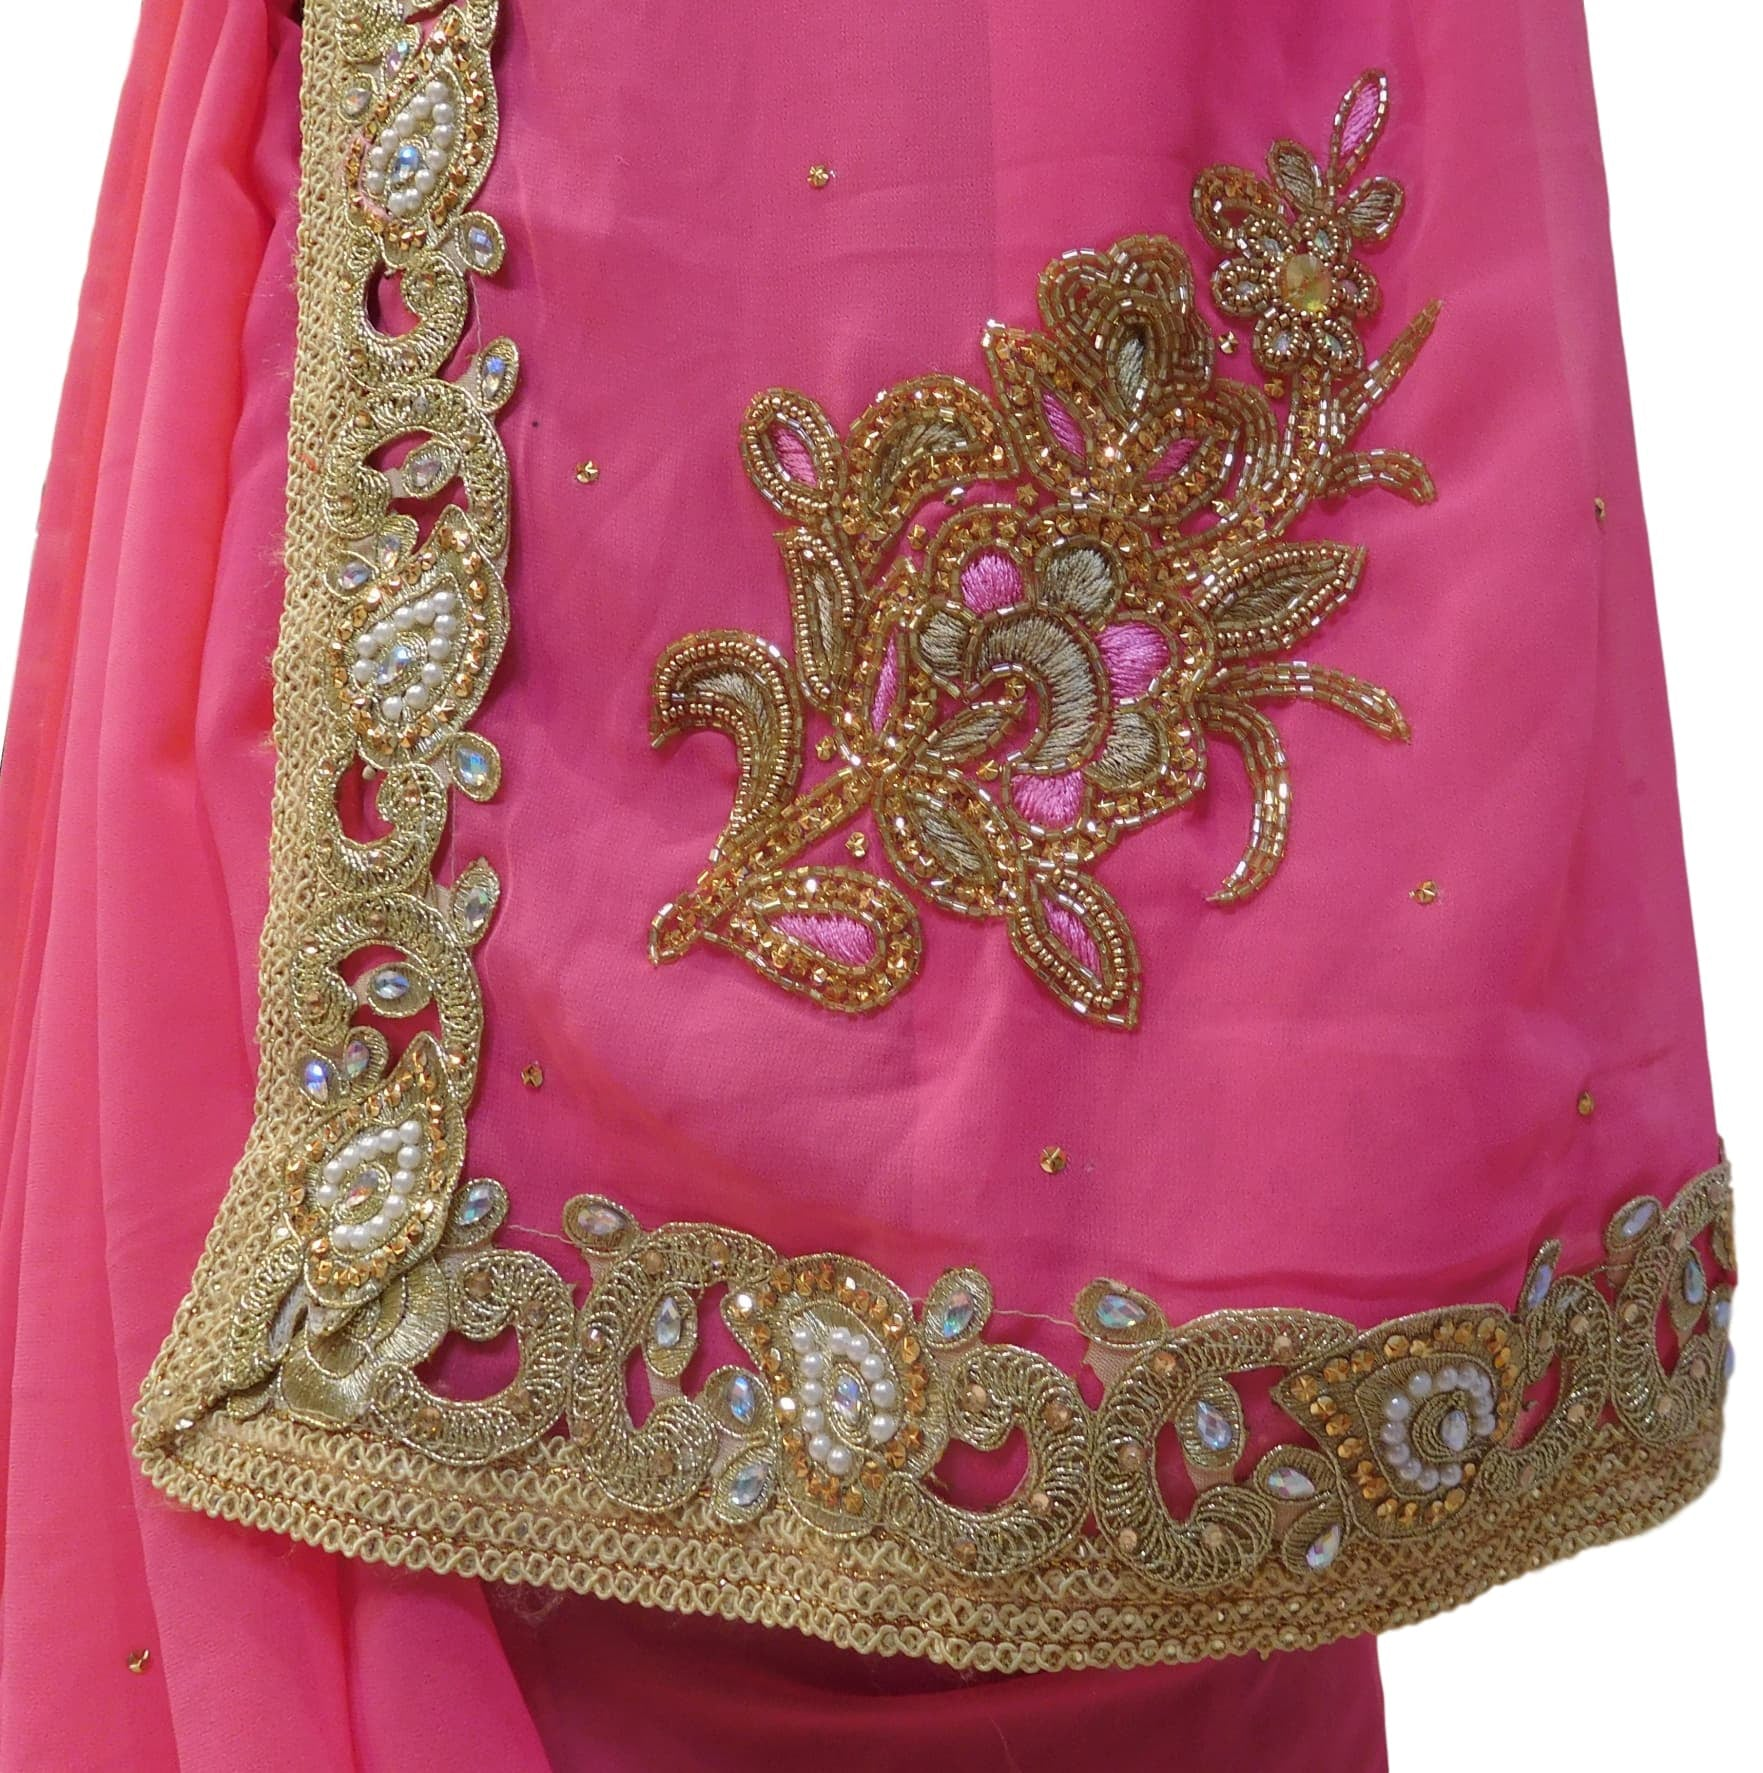 Pink Designer Georgette Hand Embroidery Zari Pearl Cutdana Beads Thread Stone Work Saree Sari